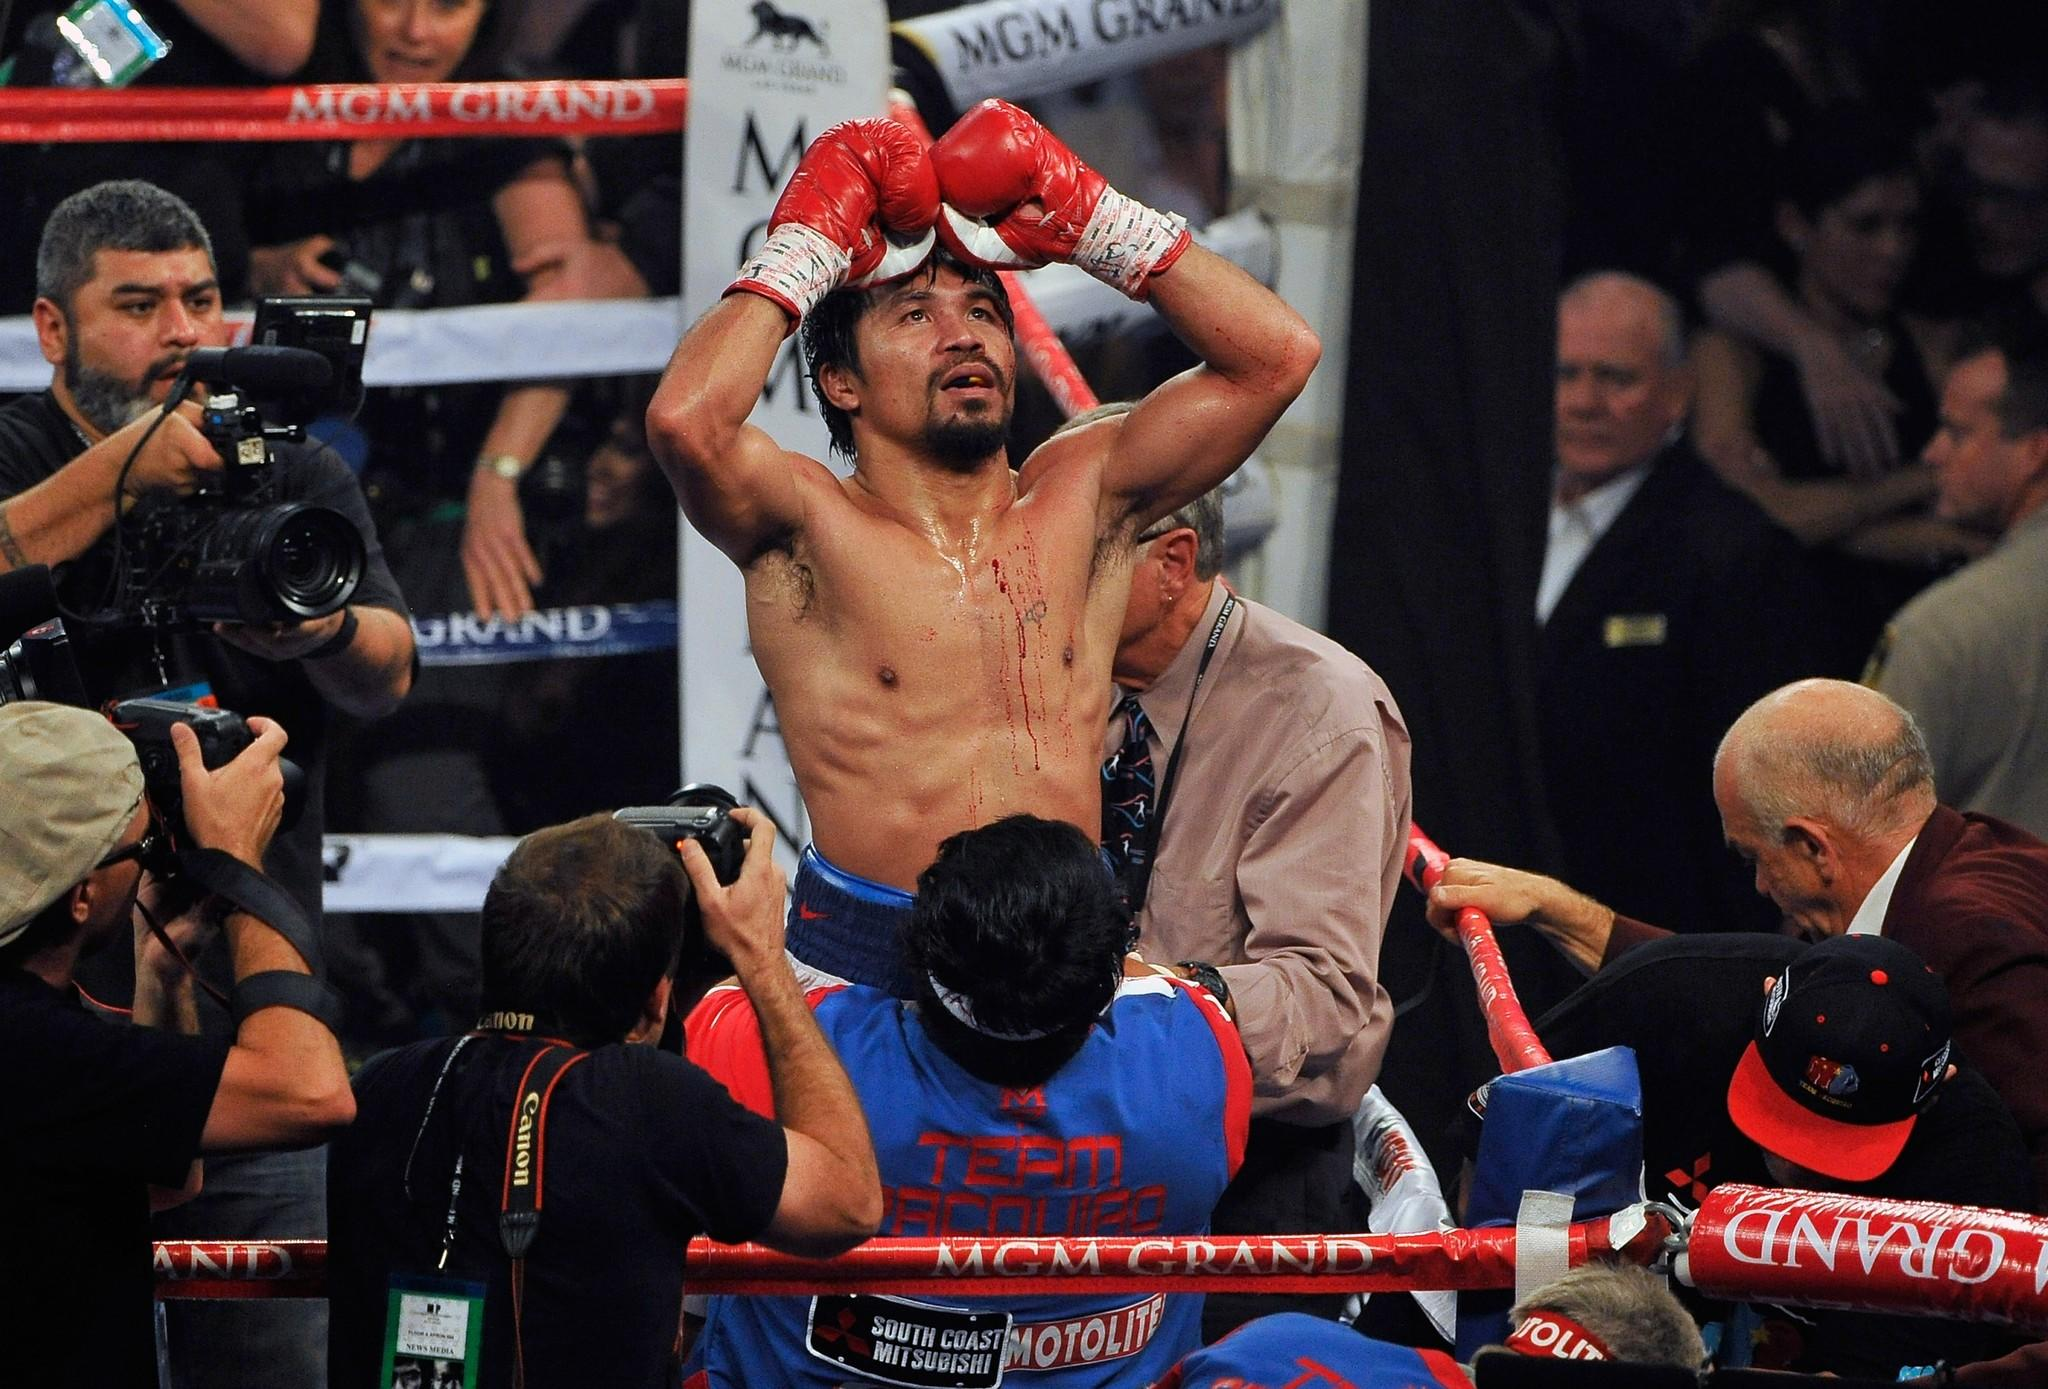 Manny Pacquiao celebrates after his unanimous decision victory over Timothy Bradley in their WBO welterweight championship match Saturday at the MGM Grand Garden Arena.